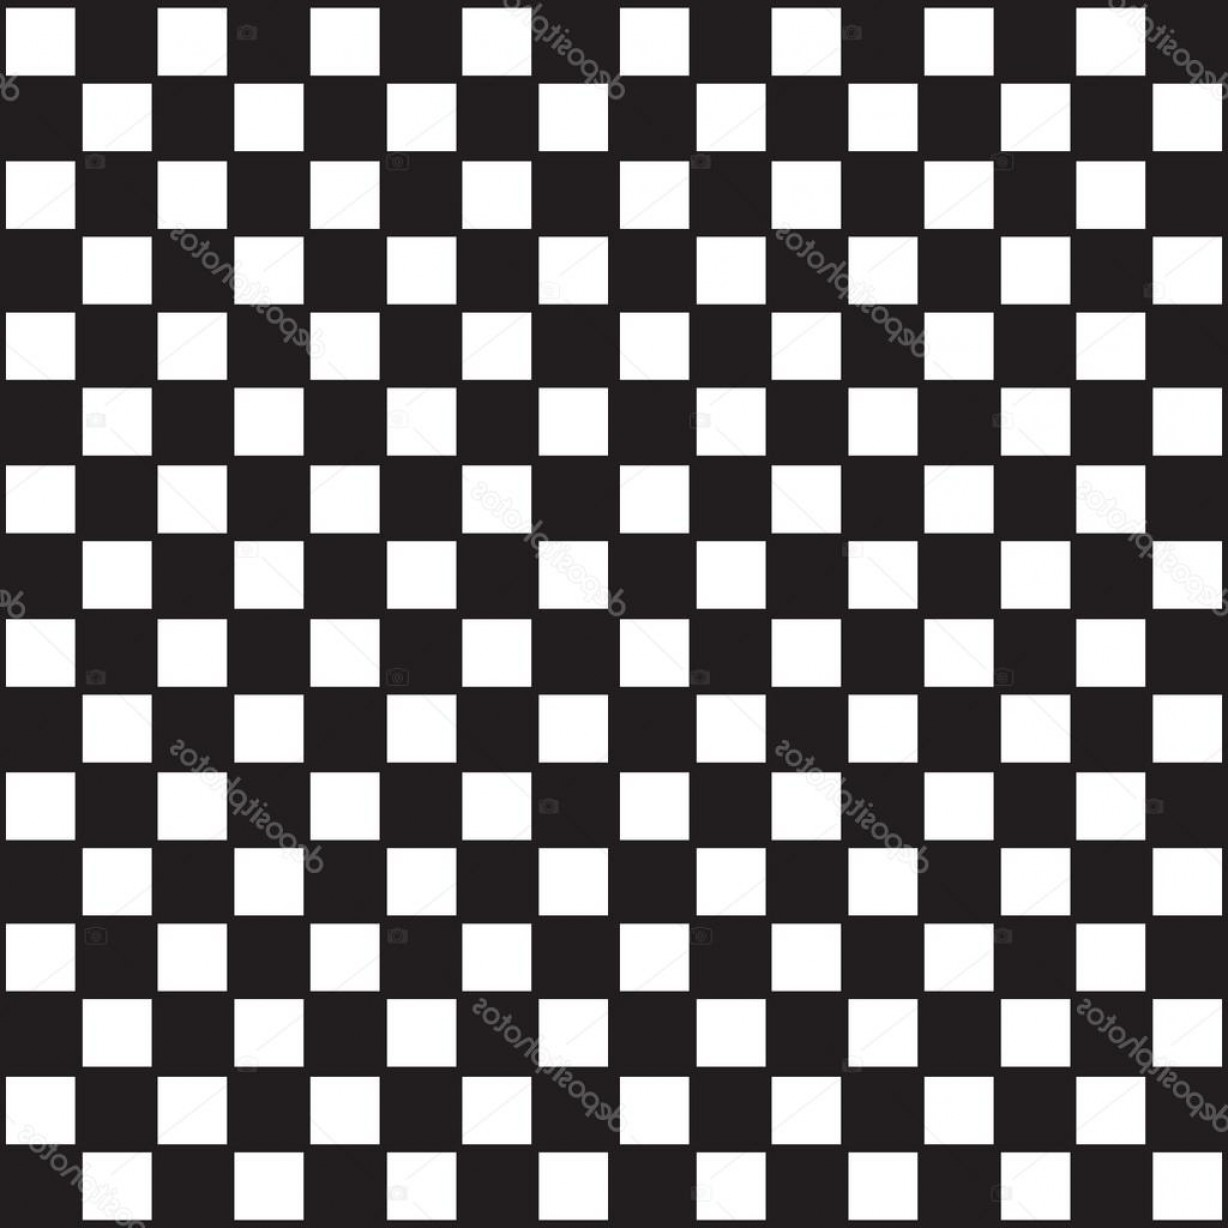 Checker Vector Template: Stock Illustration Checkered Abstract Background Checker Chess